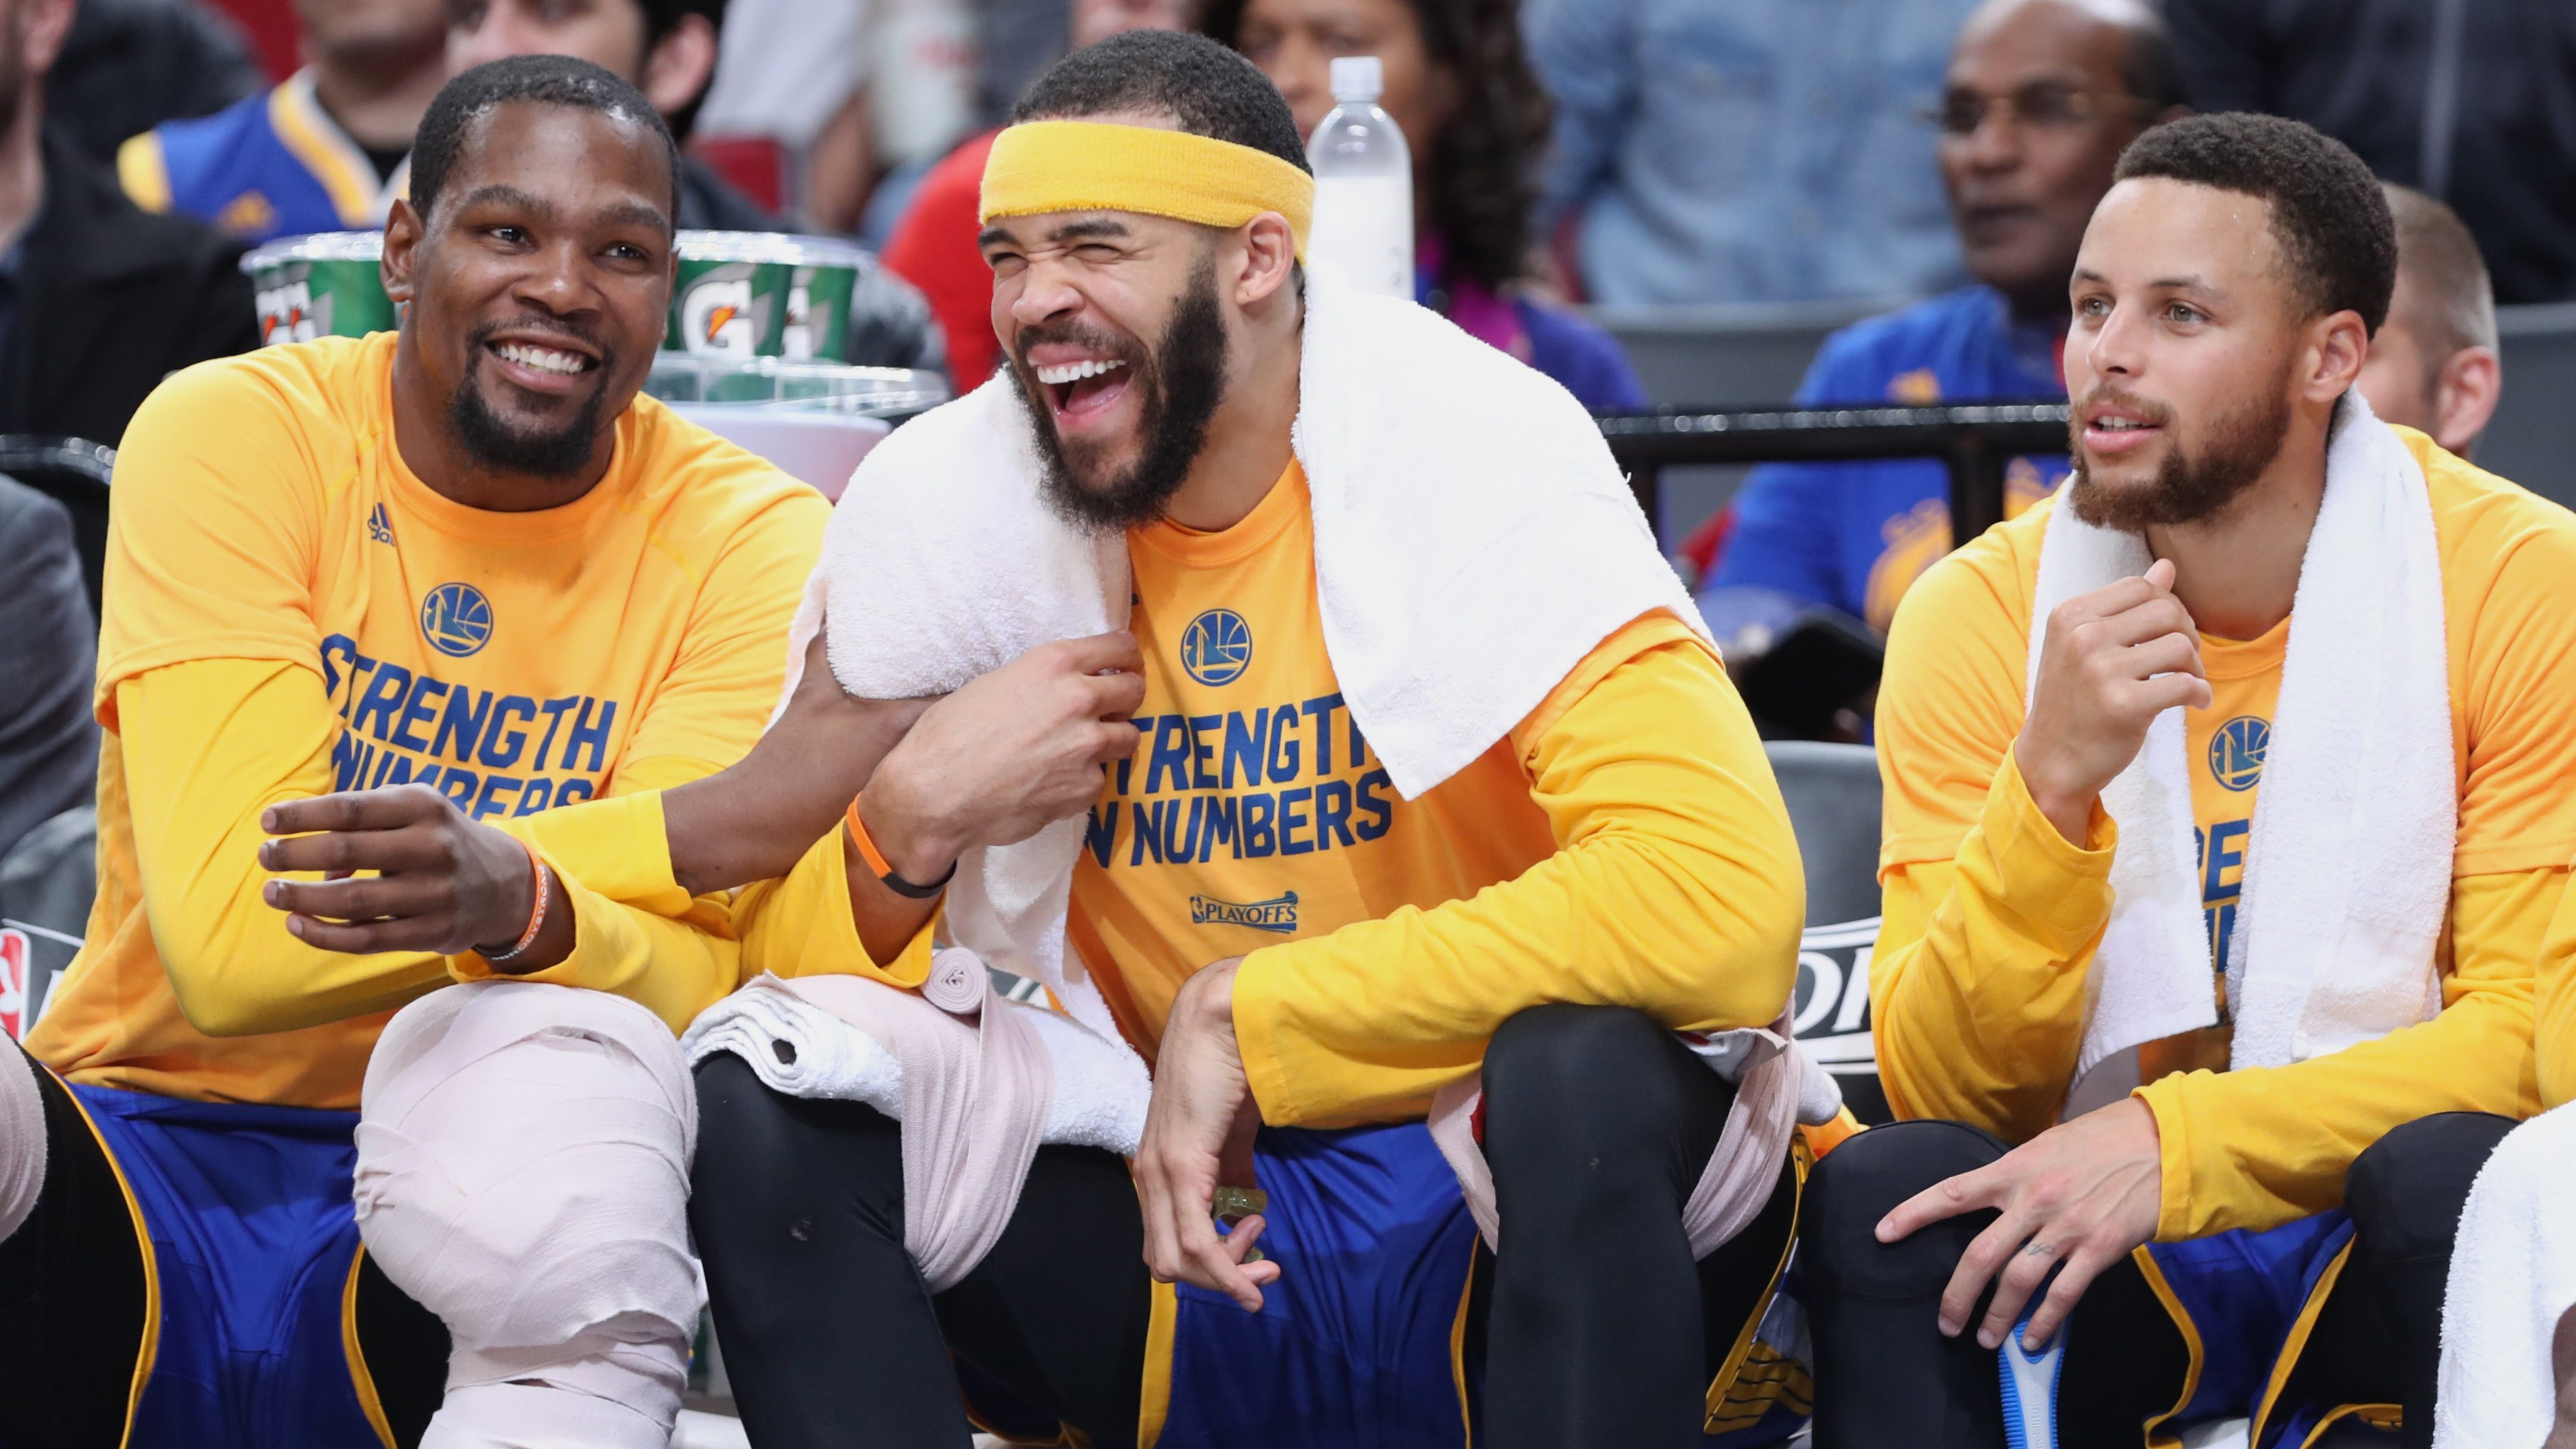 Golden State Warriors forward Kevin Durant (35) and center JaVale McGee (1) and guard Stephen Curry (30) react in the closing the seconds of a 128-103 win over the Portland Trail Blazers to clinch game four of the first round of the 2017 NBA Playoffs at Moda Center.